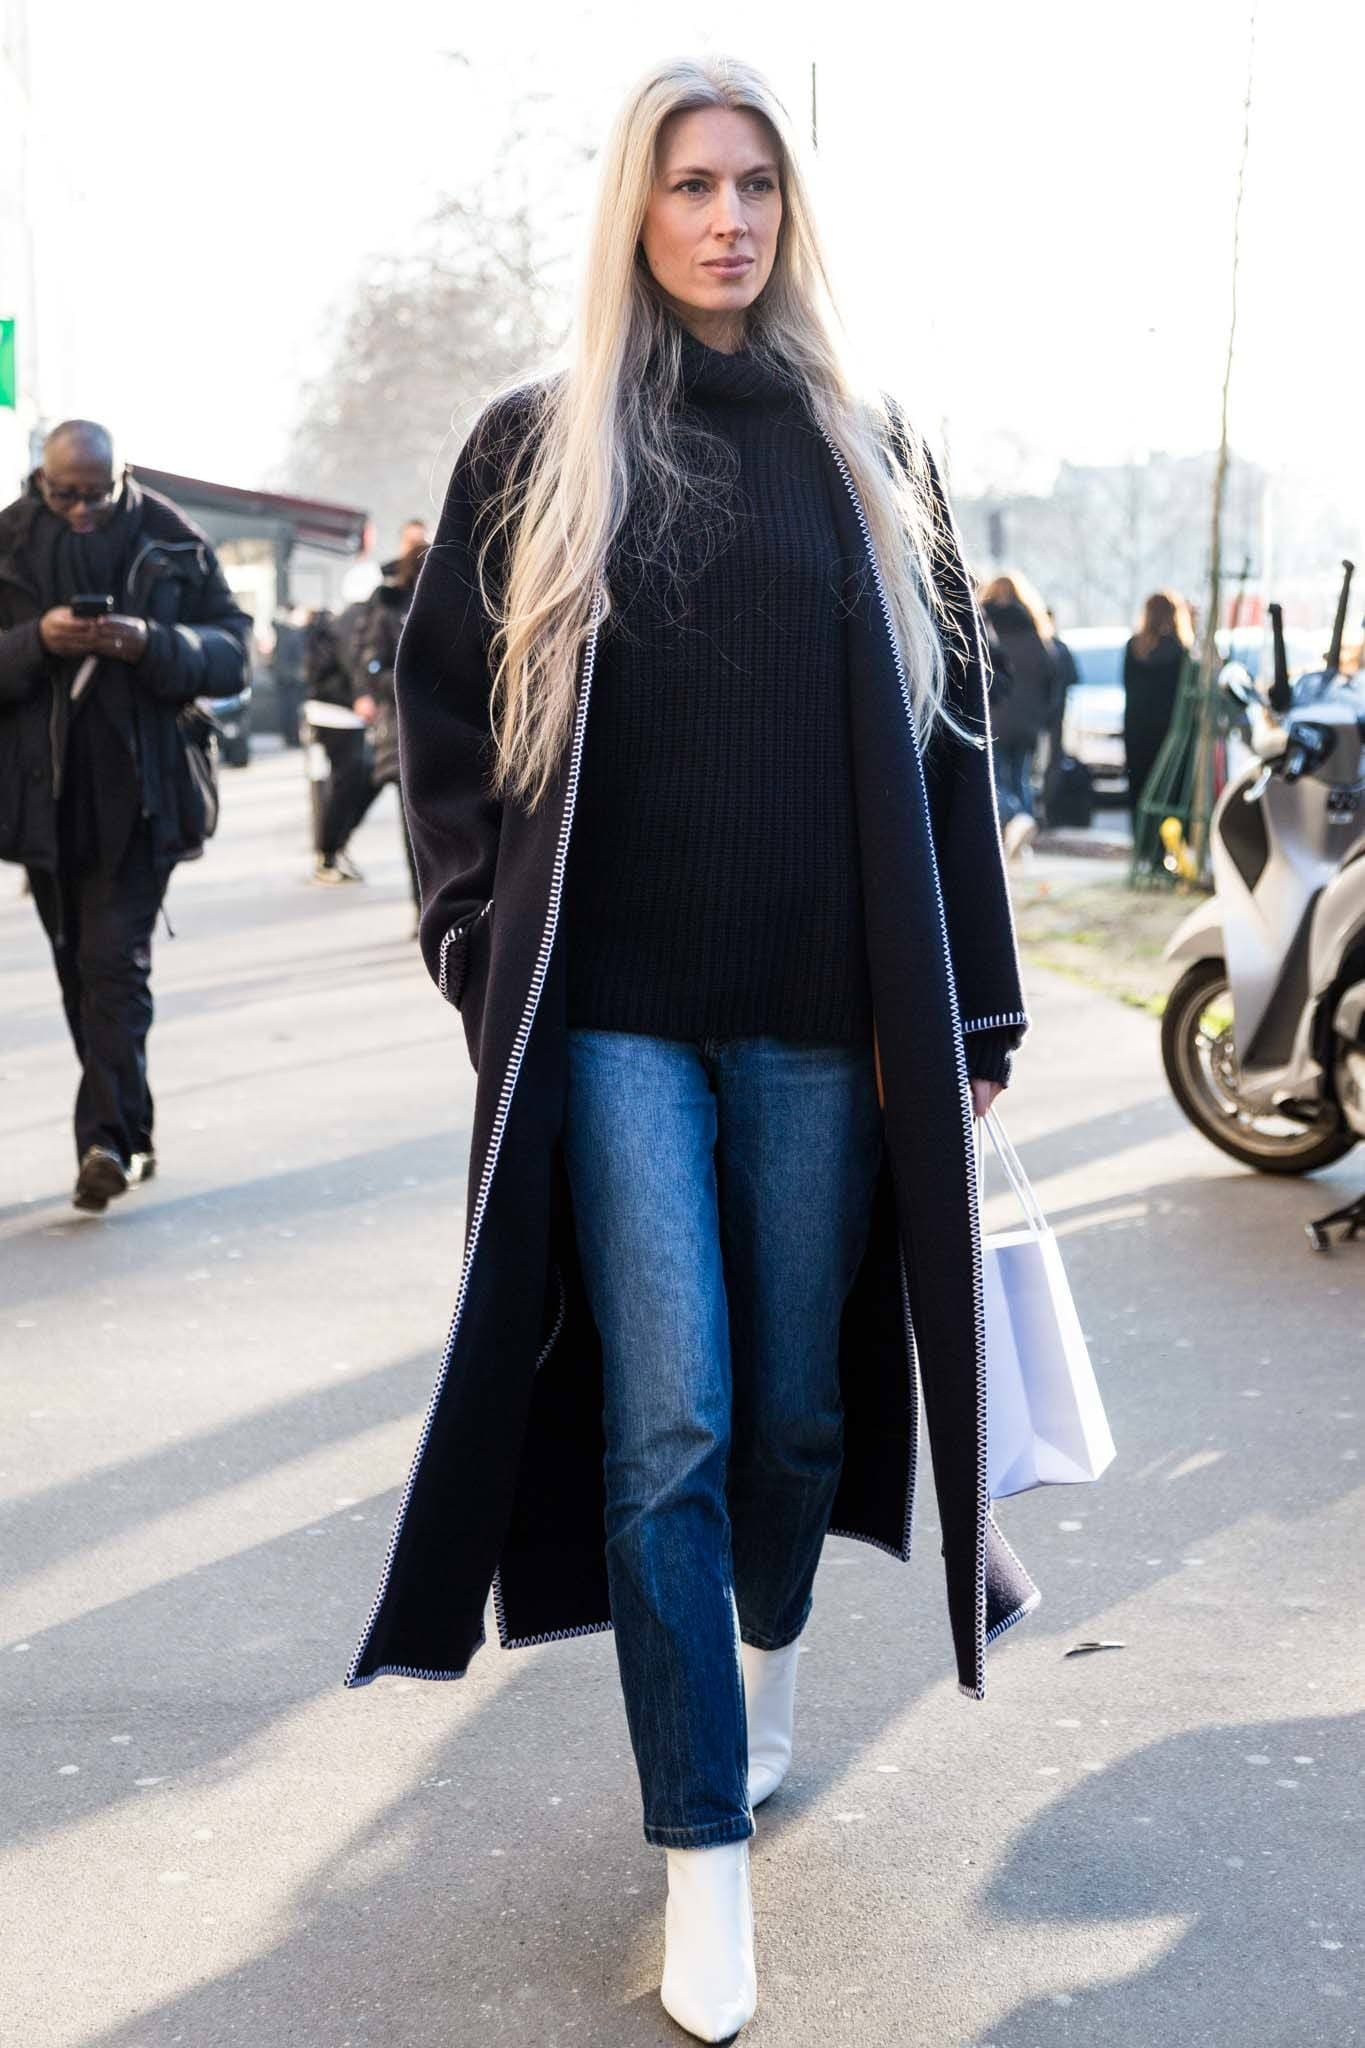 Ash blonde hair: Shot of woman on the street with long ashy blonde hair, wearing a long line black coat with jeans and white trainers outside